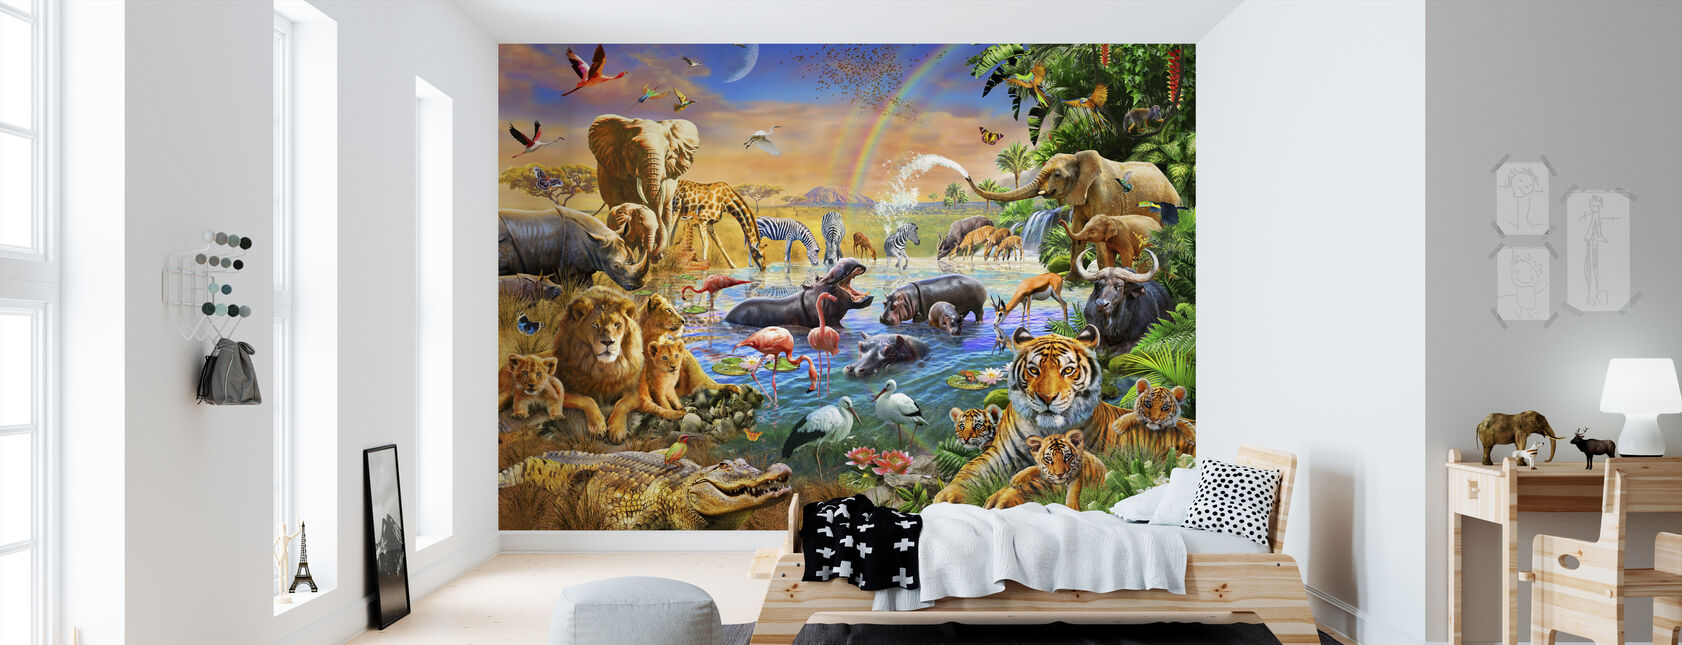 Savannah Jungle Waterhole - Behang - Kinderkamer